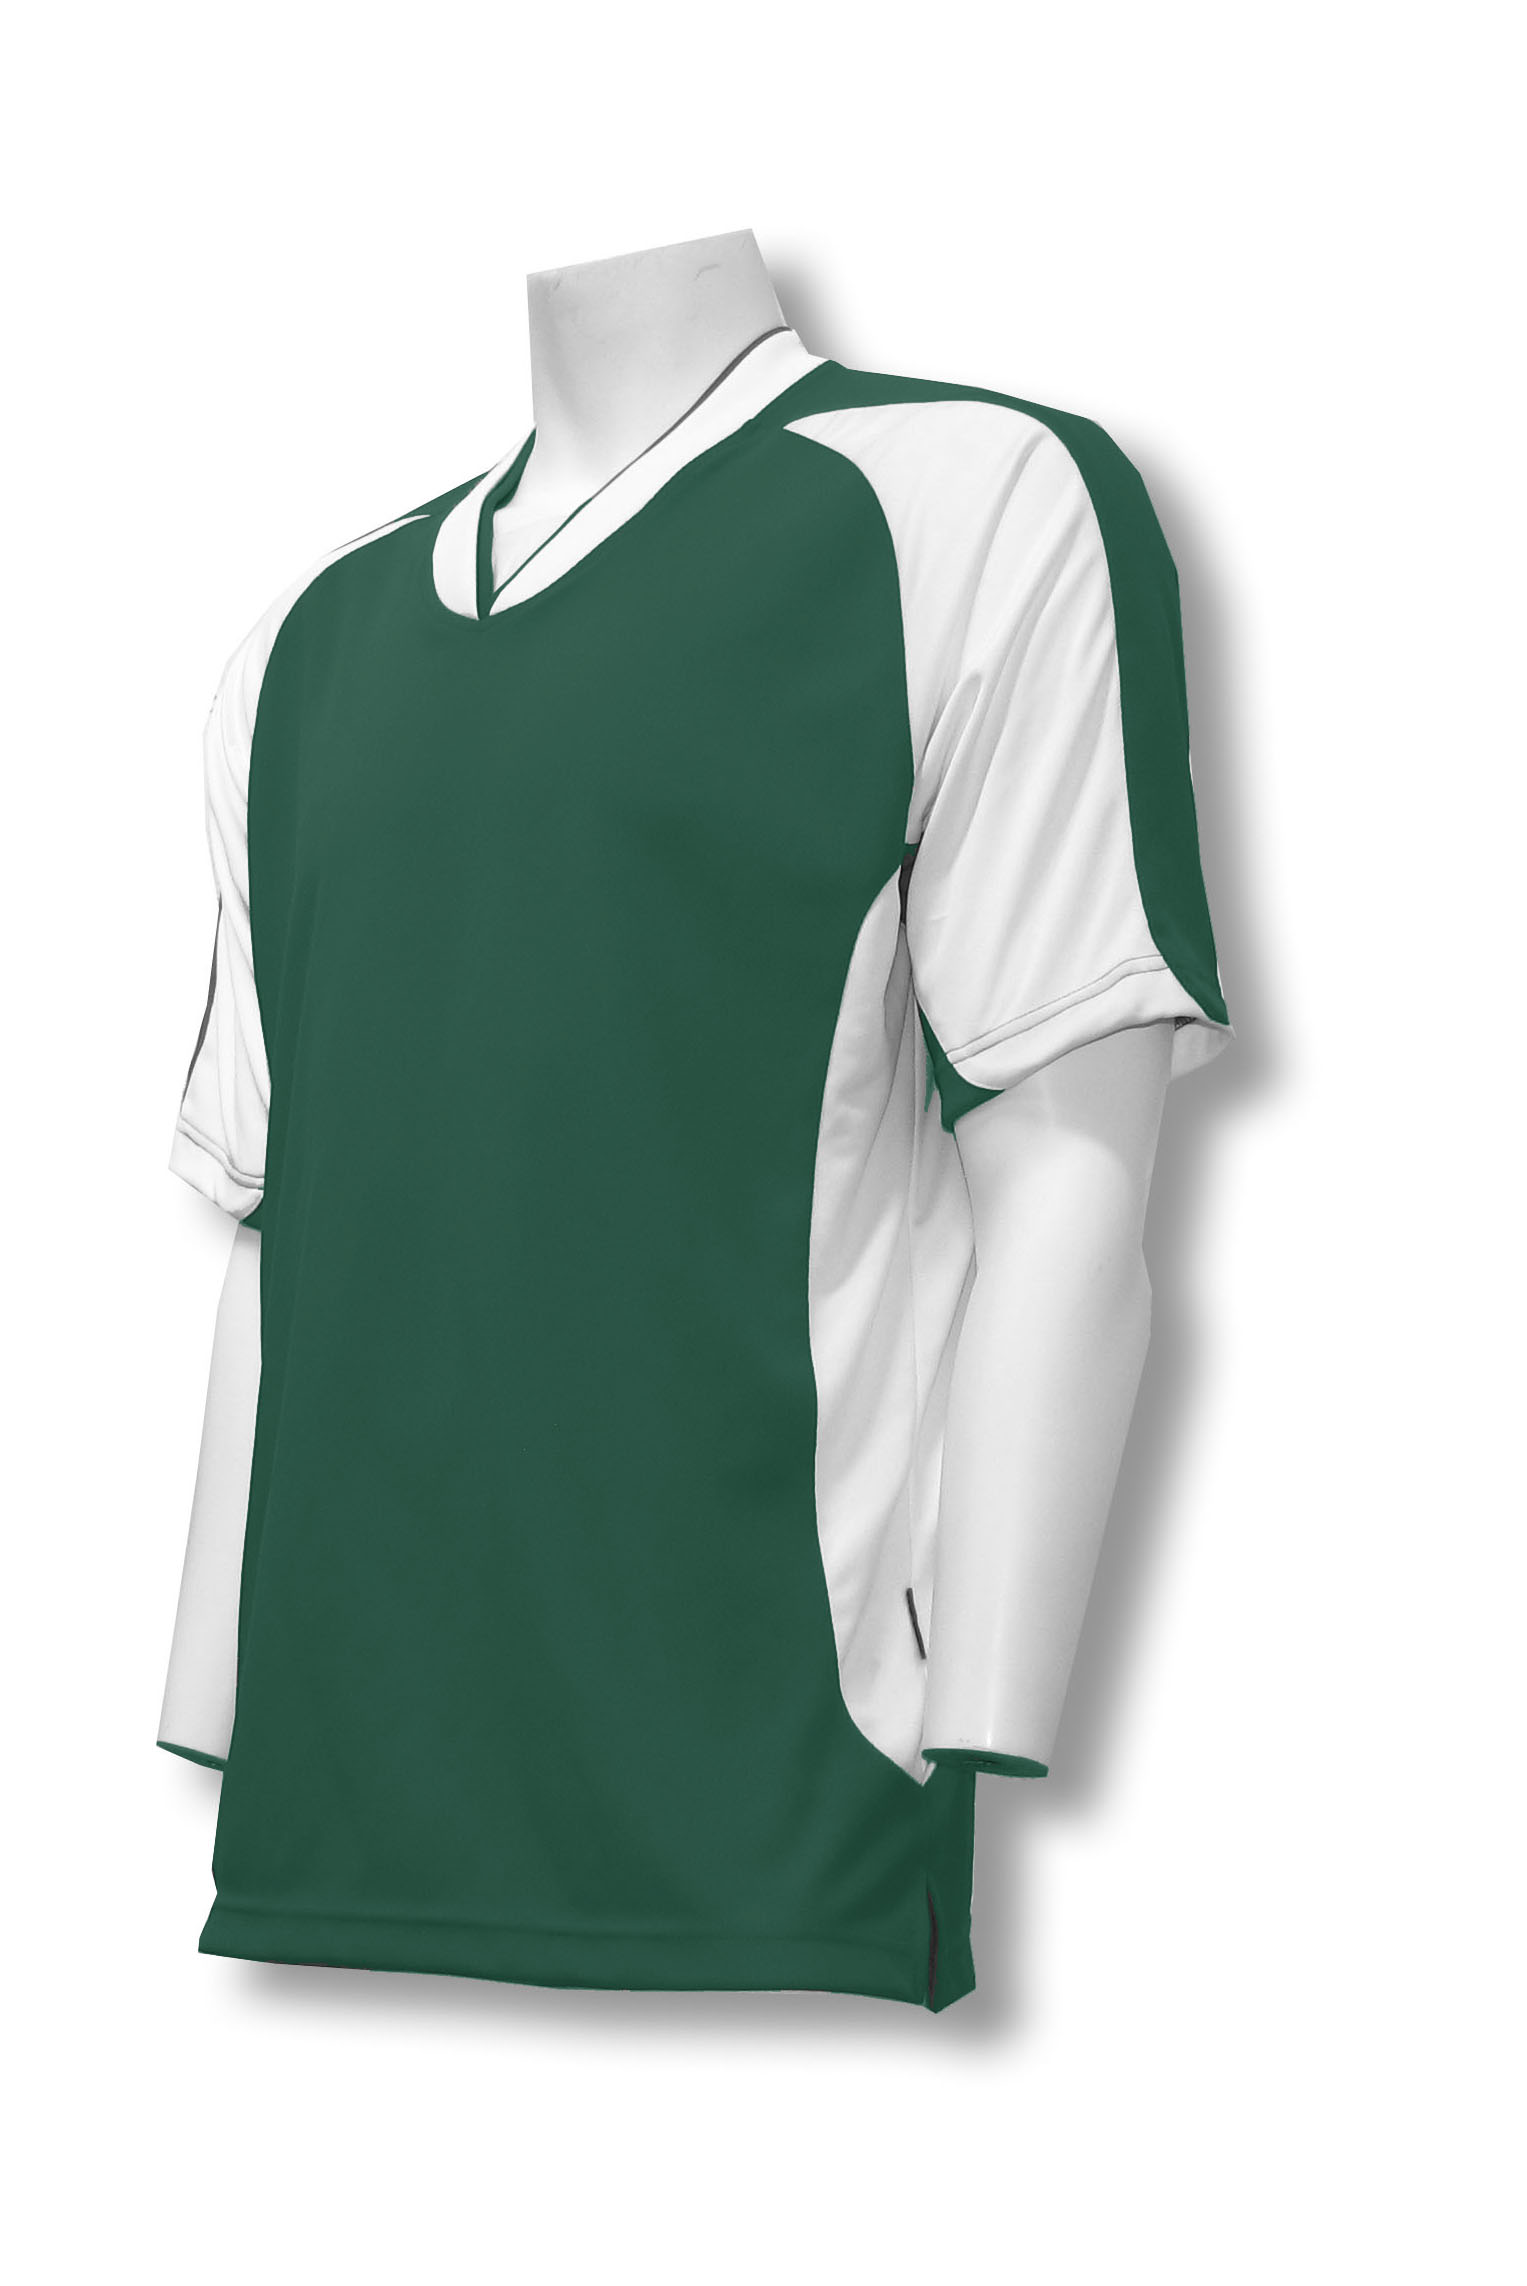 Sweeper / Falcon soccer jersey in forest by Code Four Athletics